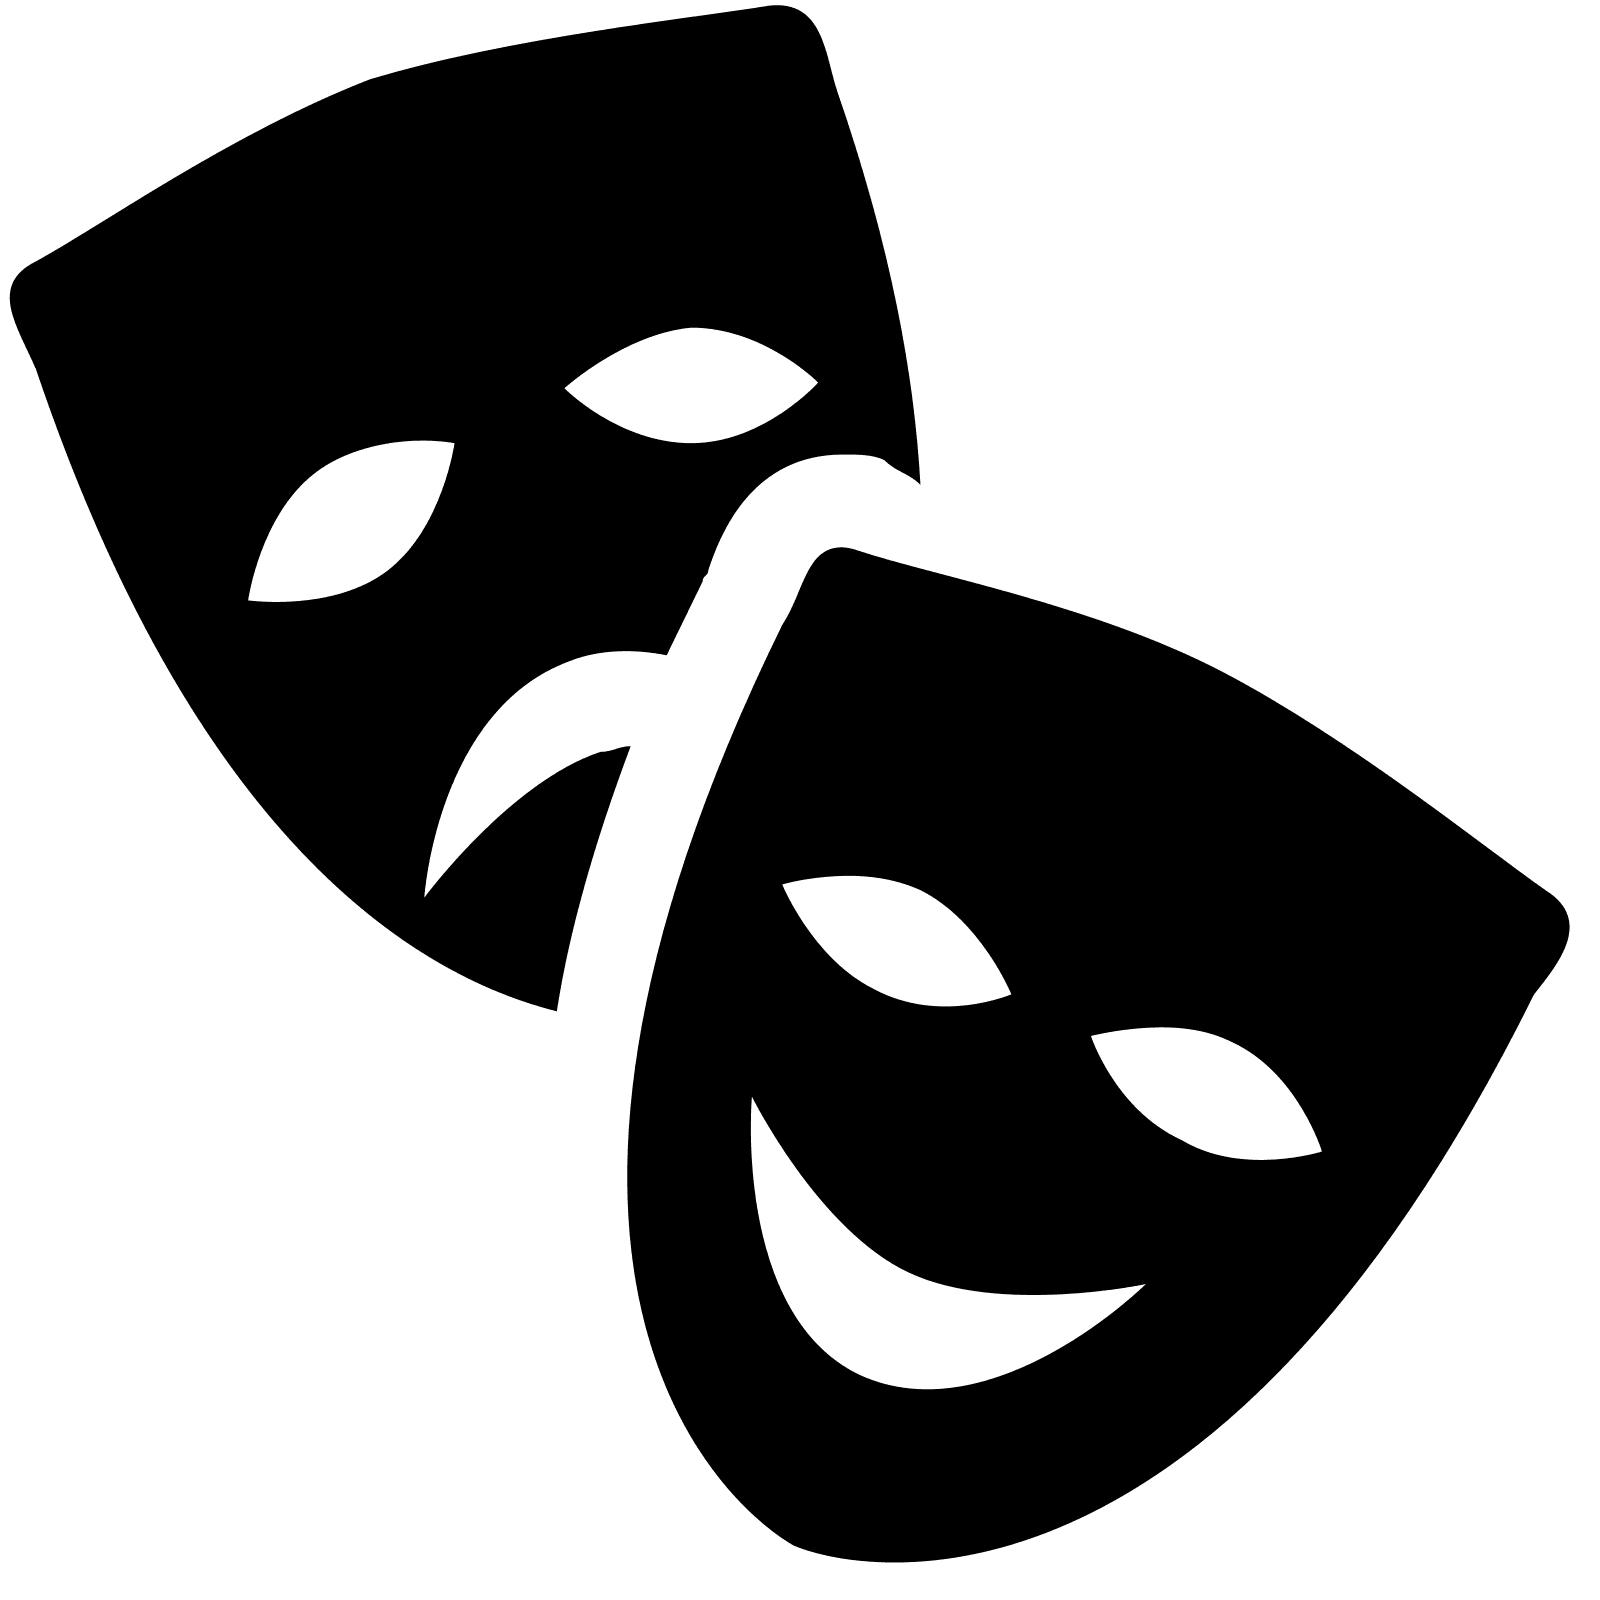 Theater Png & Free Theater.png Transparent Images #3107.